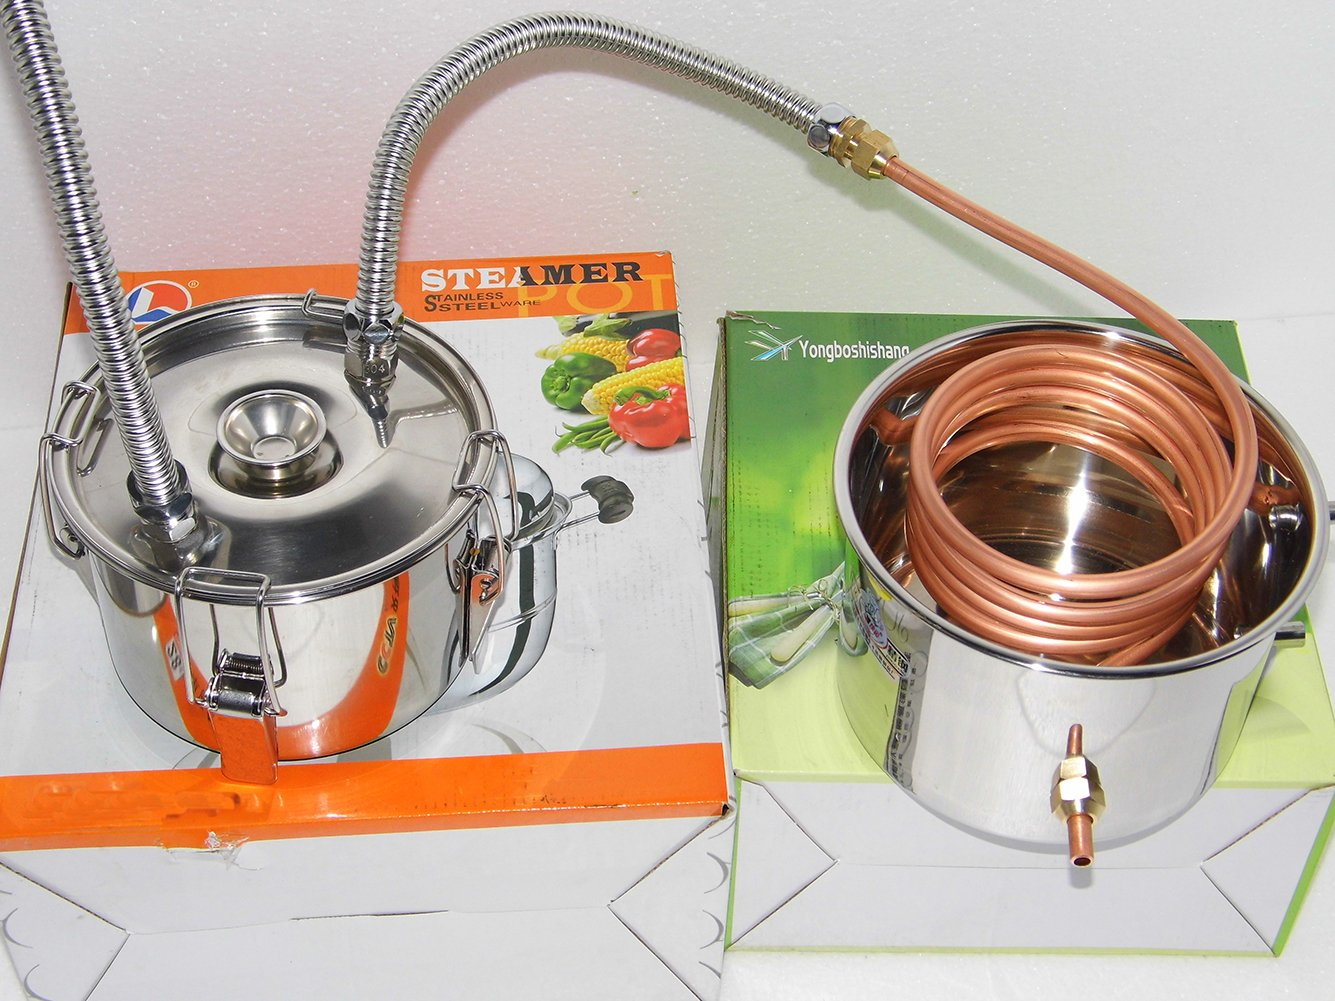 OLizee 5 Gal Stainless Steel Water Alcohol Distiller Copper Tube 18L Moonshine Still Spirits Boiler Home Brewing Kit with Thumper Keg by OLizee (Image #5)